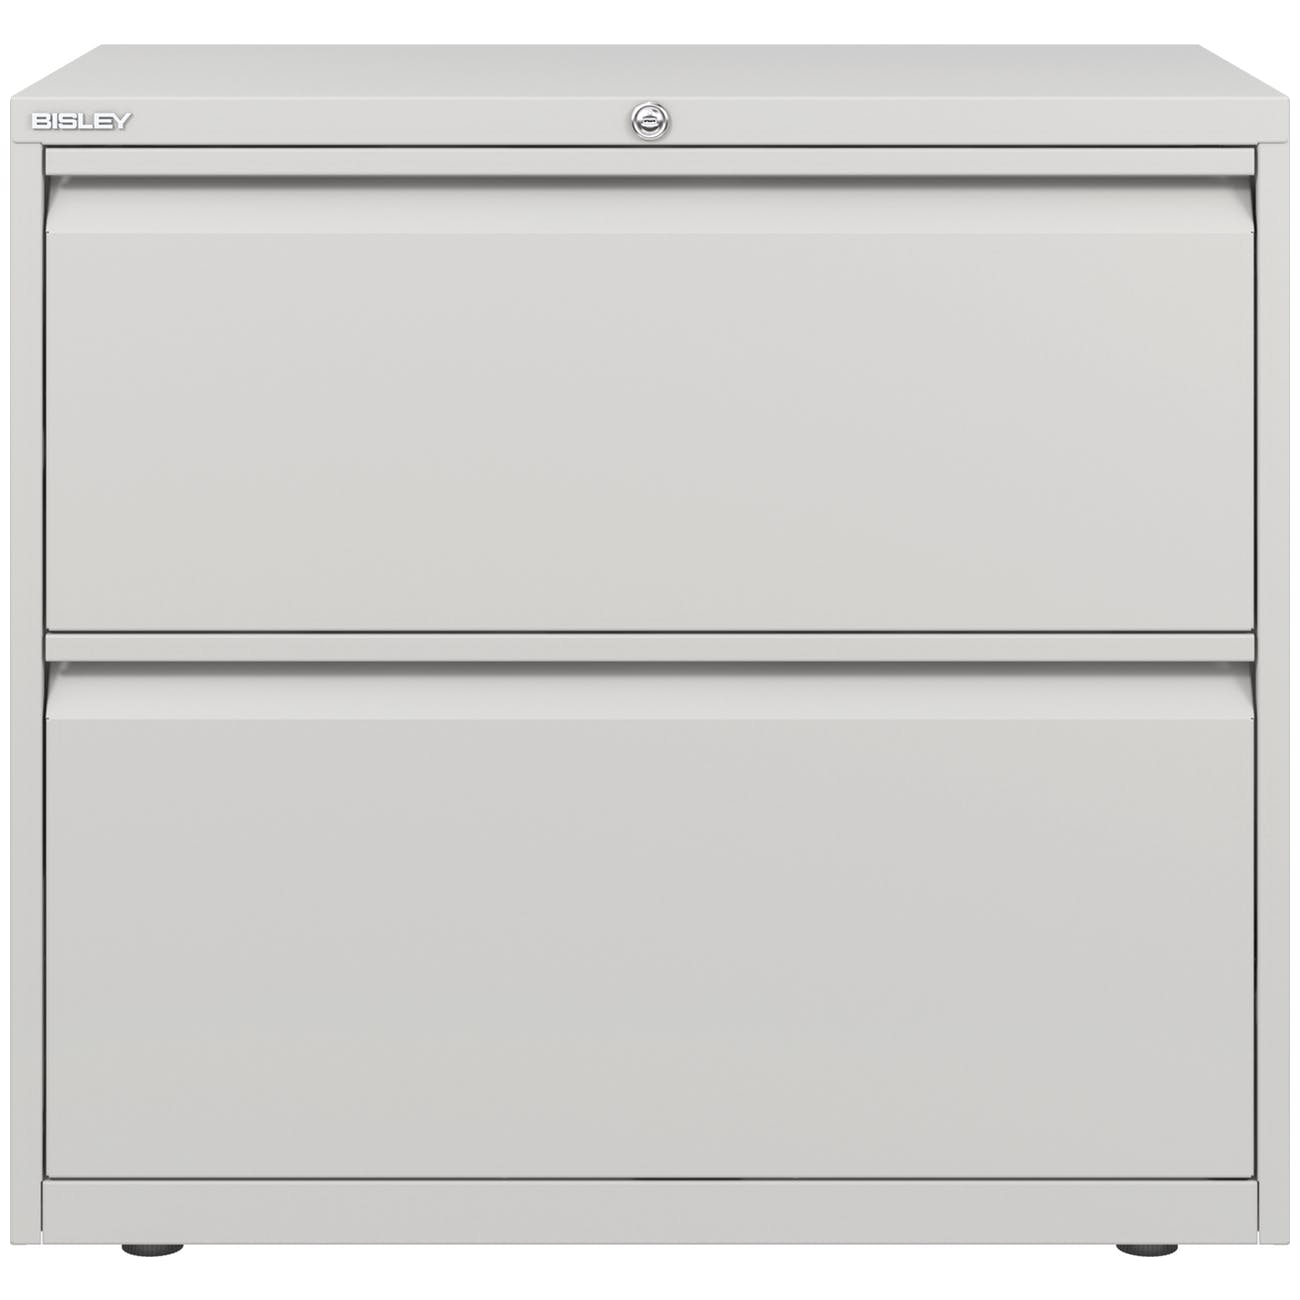 Bisley Essentials Desk High 2 Drawer Cabinet 80cm Wide Yesfdh0807 By Bisley In File Cabinets Drawer Unit Drawers Desk Units